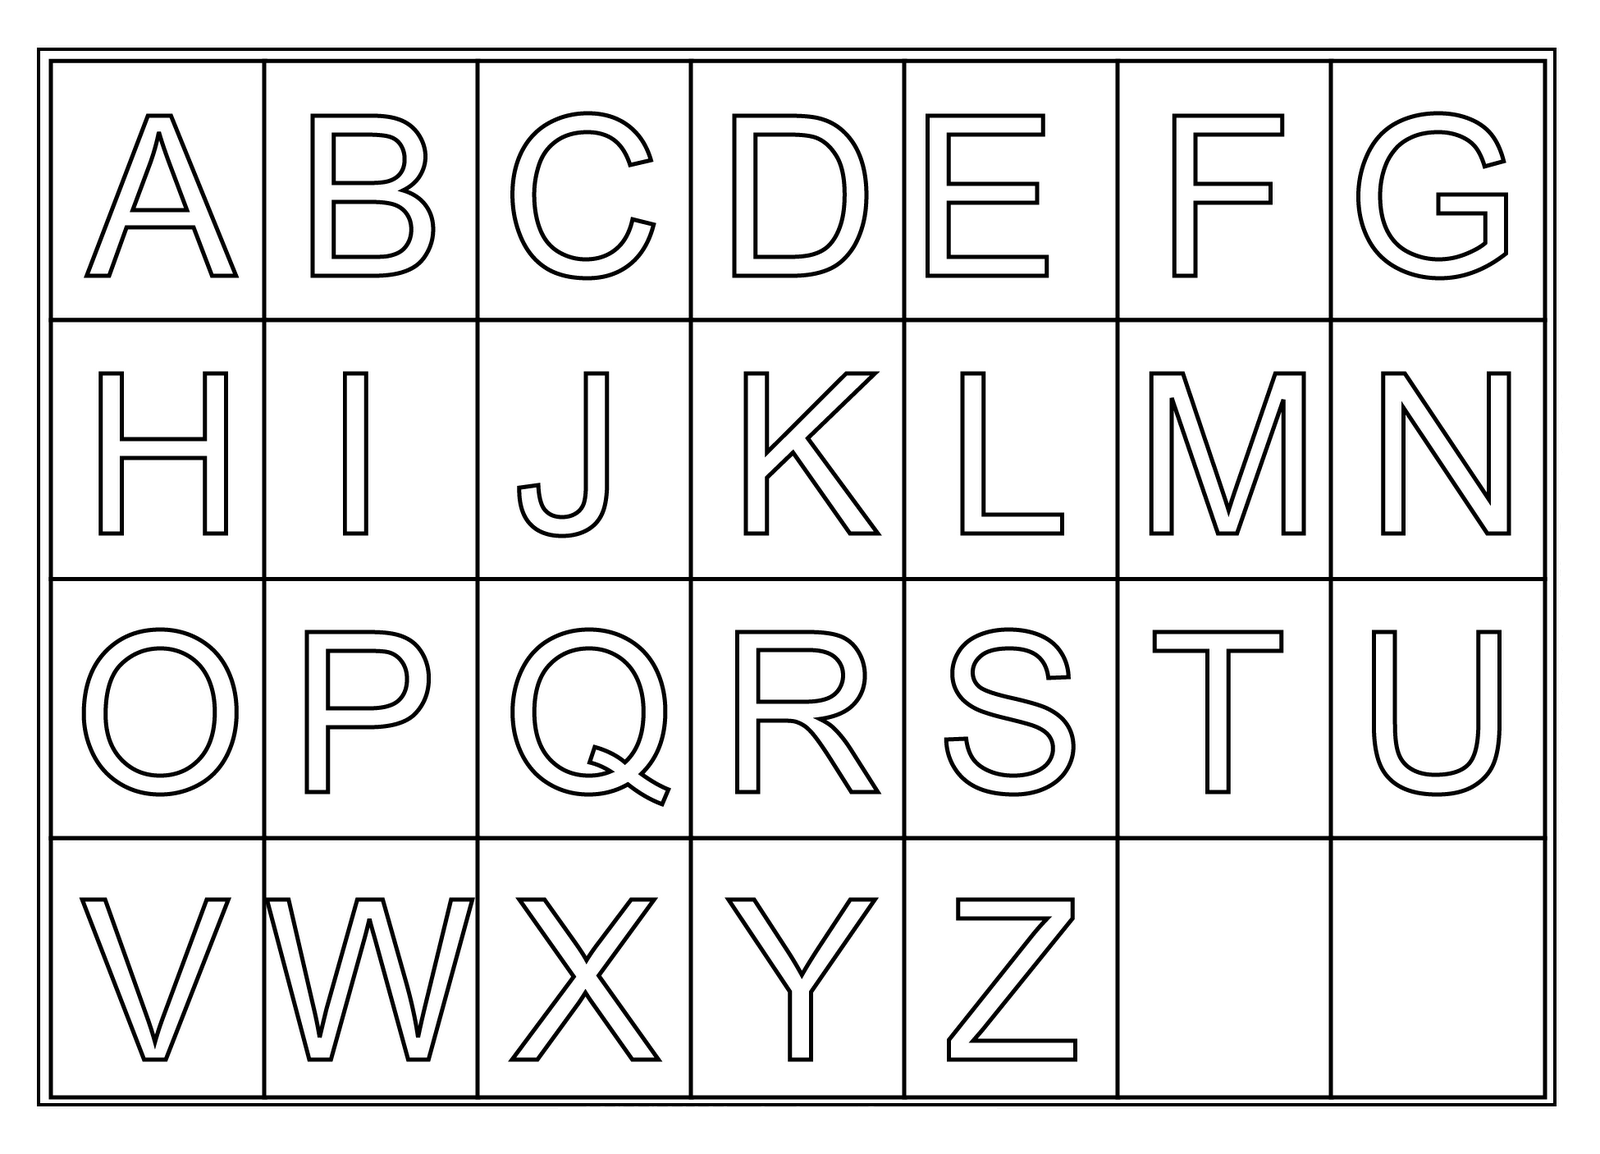 worksheets on letters for preschoolers printable - Free Download Printable Worksheets For Kindergarten